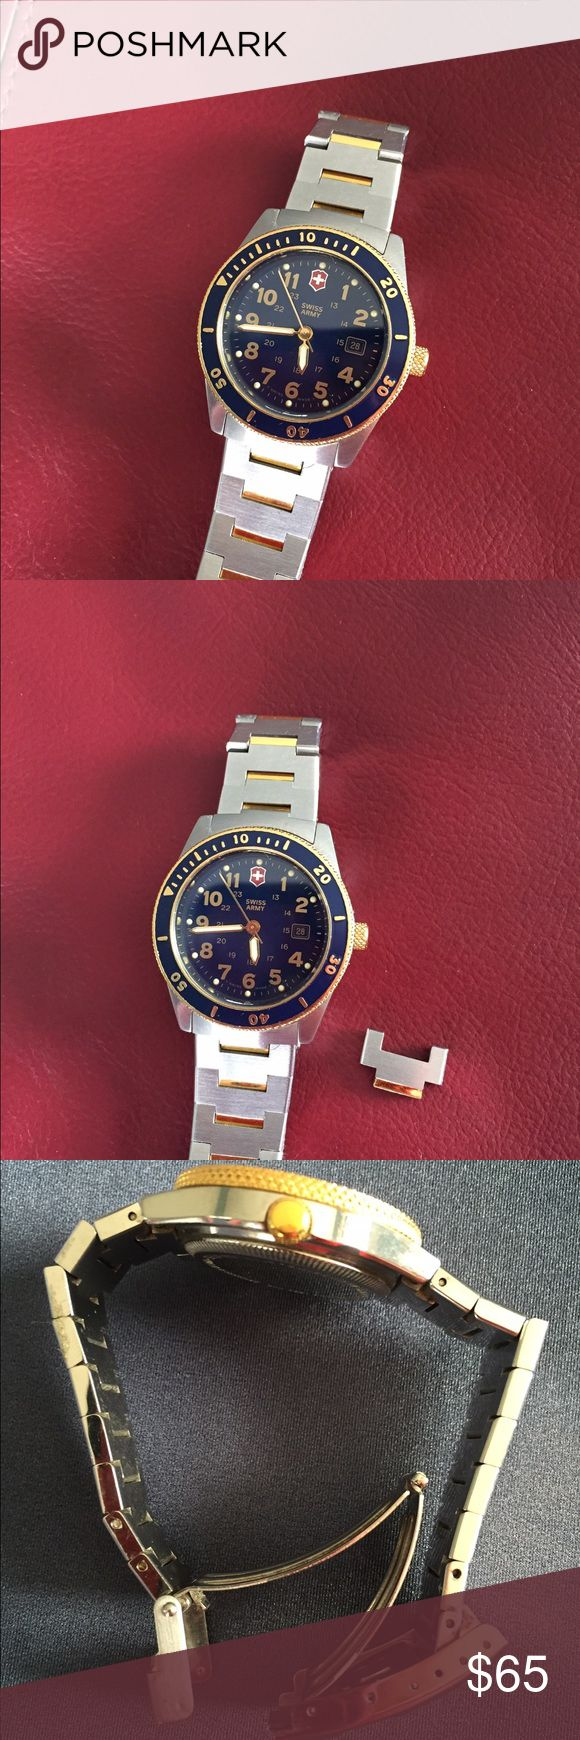 Swiss Army watch Stainless steel case and deployment band with gold accent links. Fits small wrist, extra link available. Date display and moveable bezel. Shows some wear, please see photos. Needs battery. Swiss Army Accessories Watches